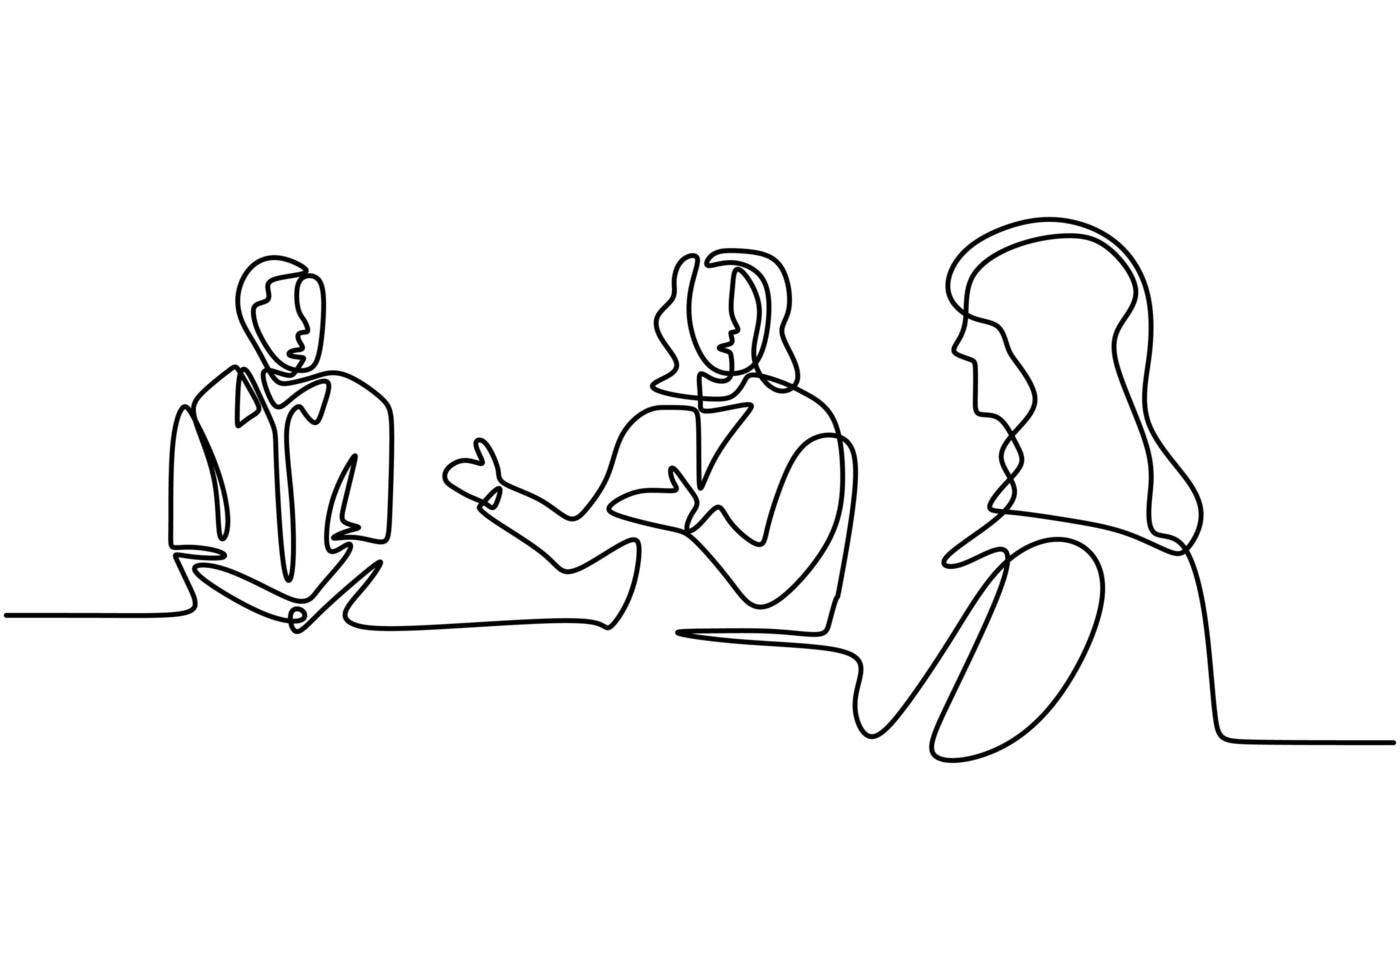 continuous-line-drawing-of-office-workers-at-business-meeting-teamwork-with-group-of-man-and-woman-v